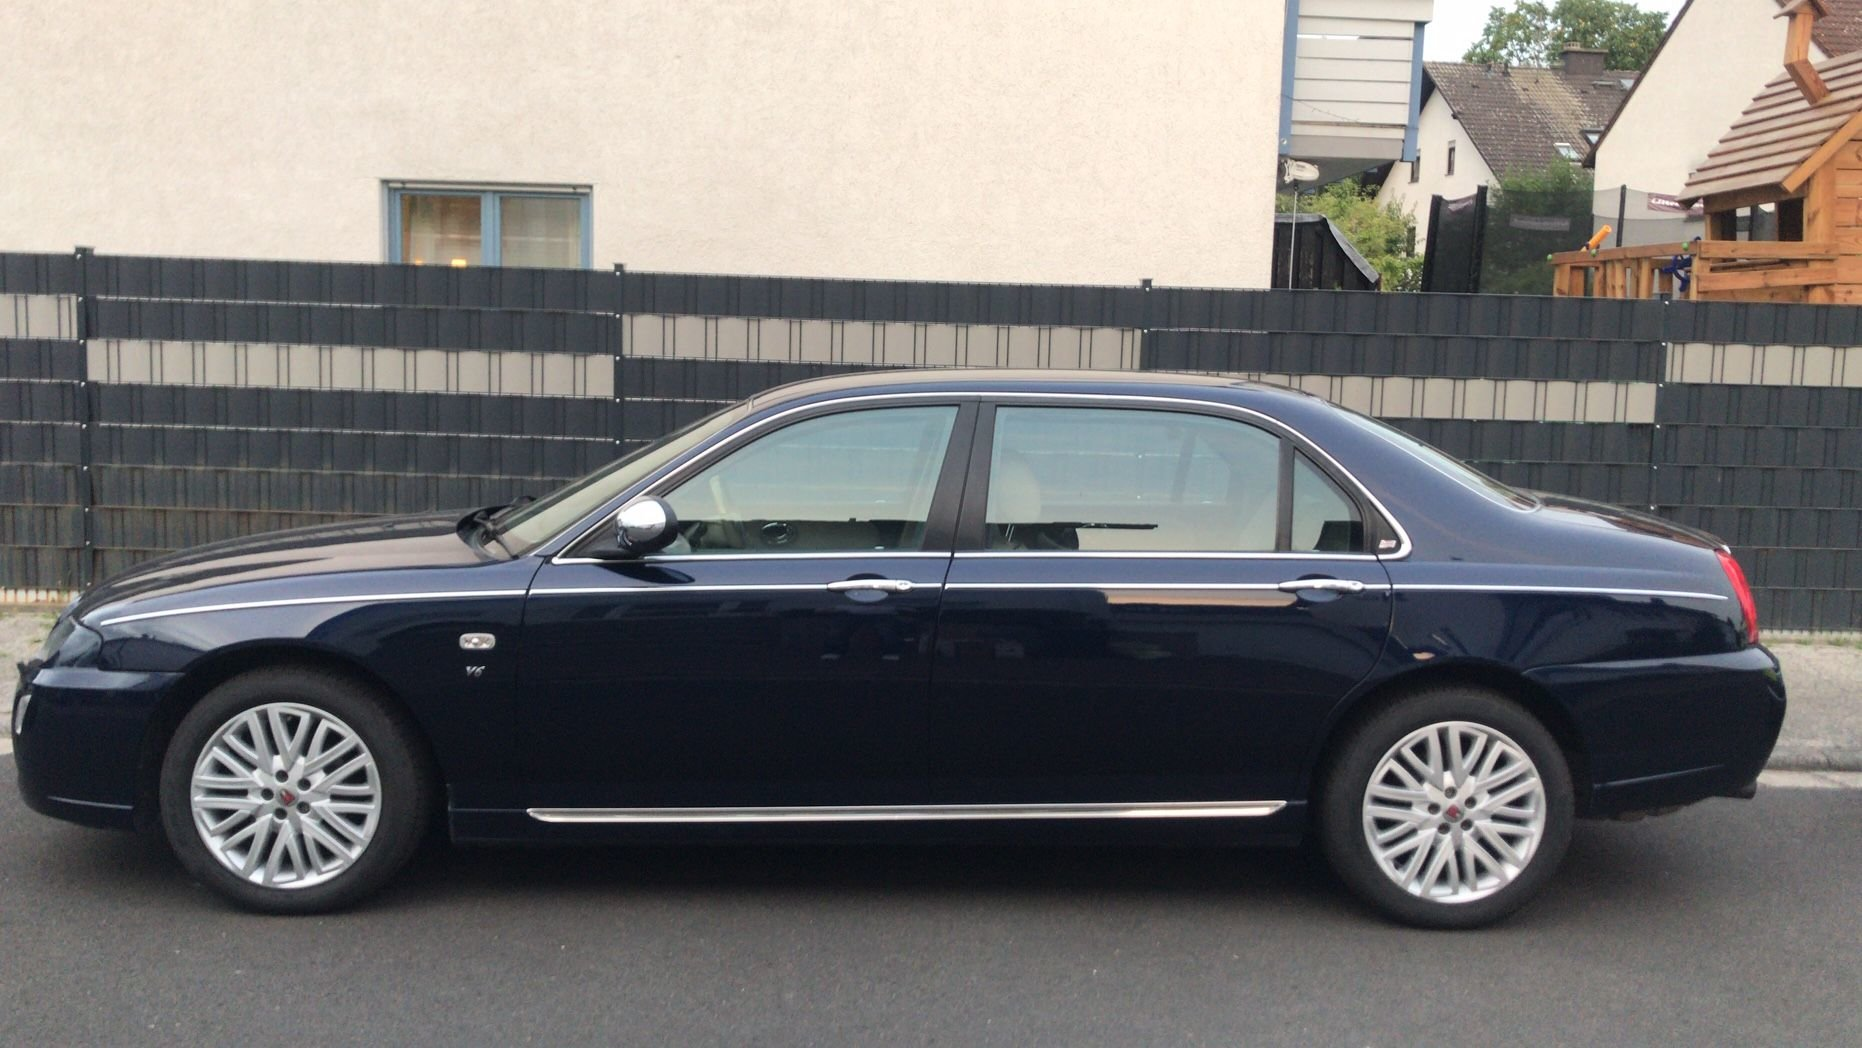 2005 75 LIMOUSINE (1 of approx 75 LWB ever built) - RHD For Sale (picture 2 of 5)